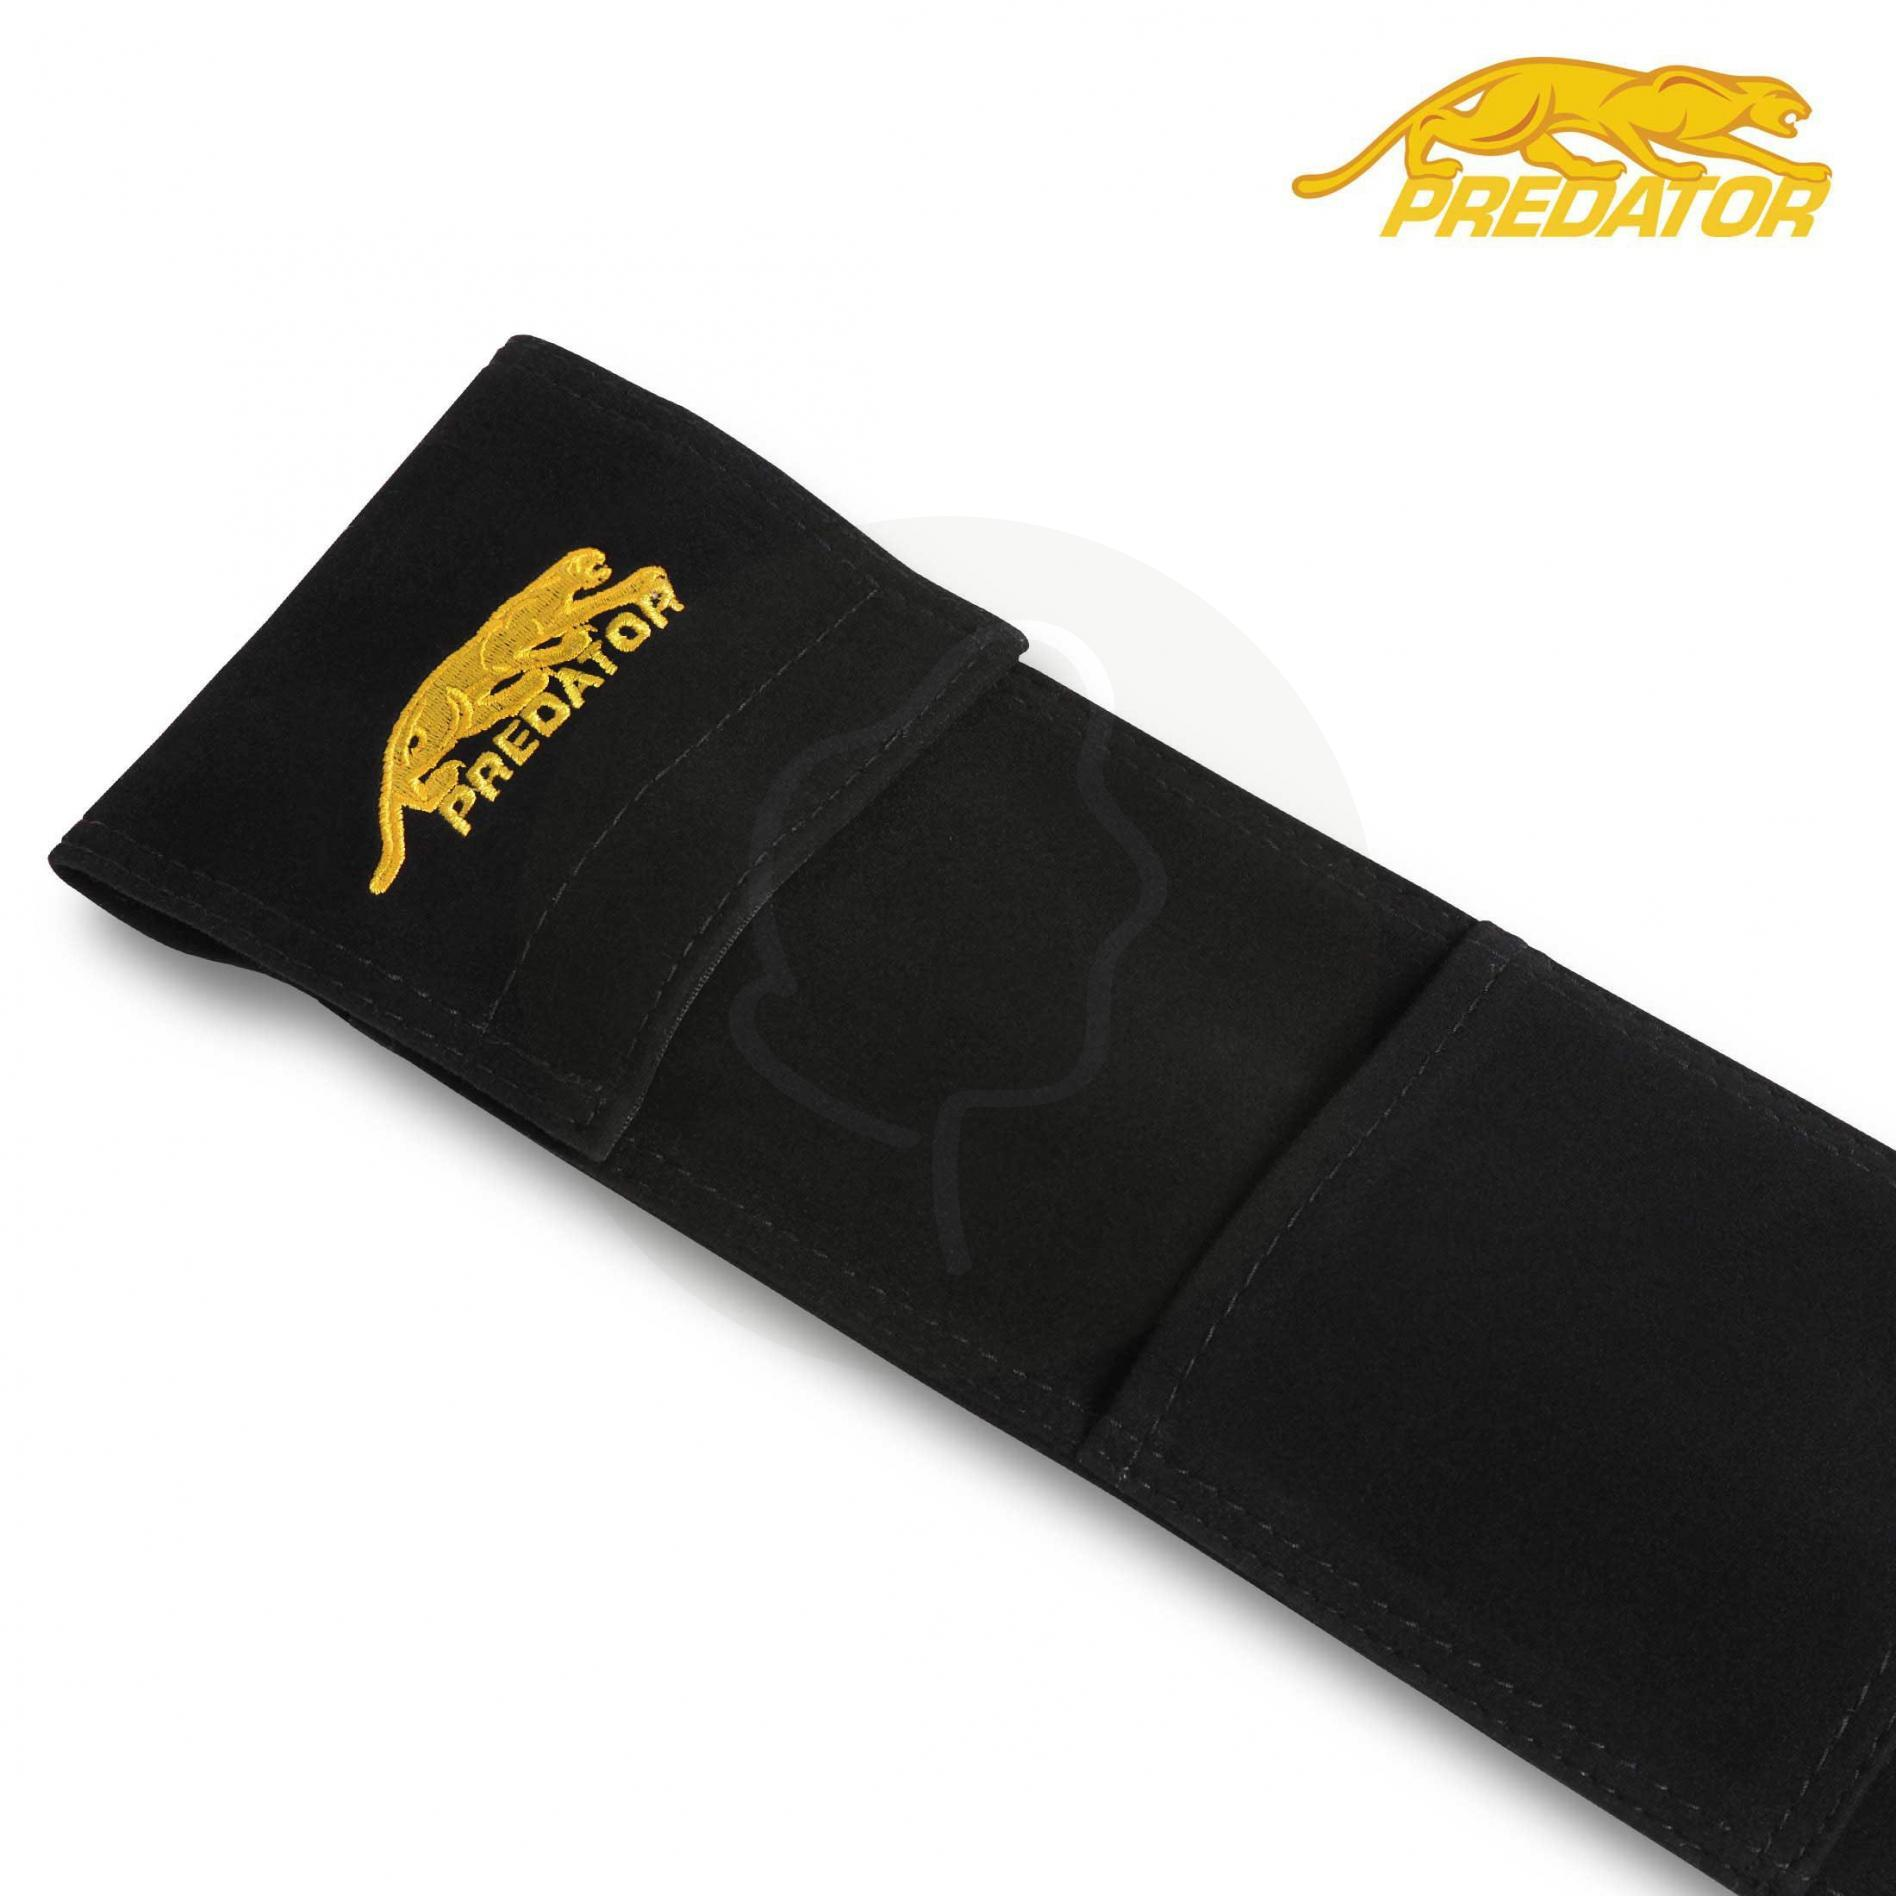 Кий Predator 9K-1 Leather Luxe™ 314³ 2PC Пул 19oz